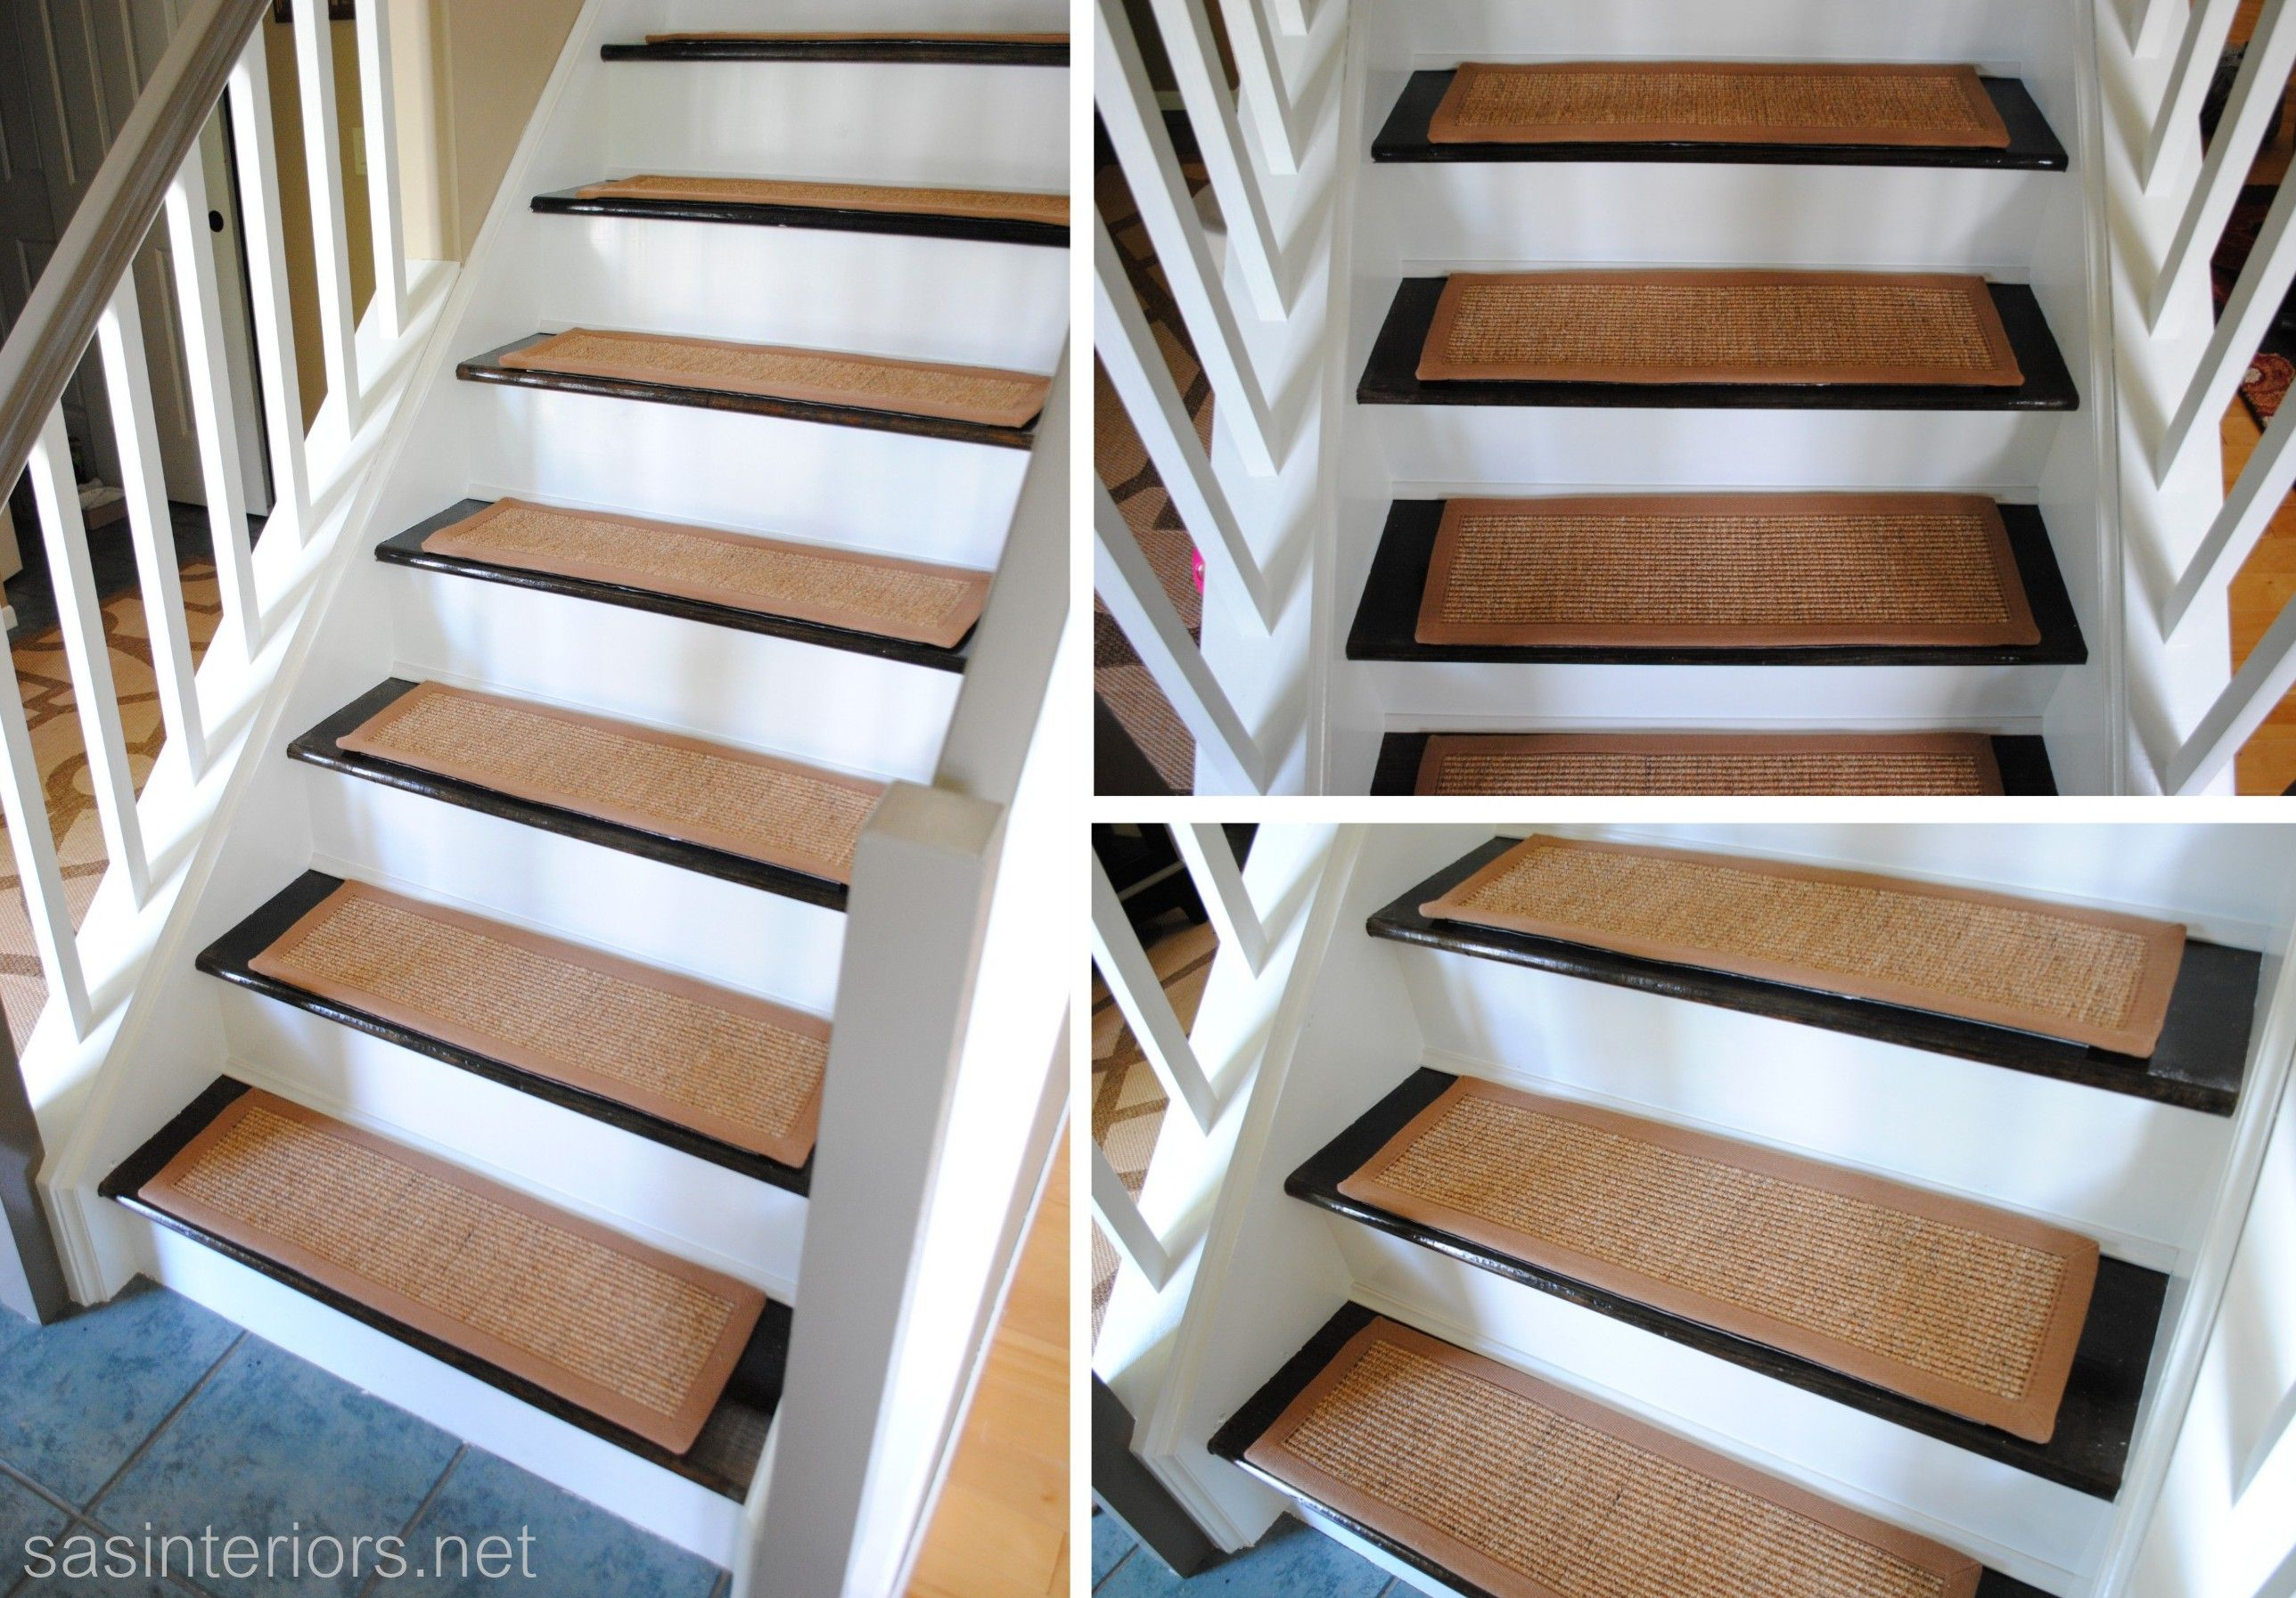 My Staircase Is Finished Sas Interiors Carpet Stairs Wood Stairs Patterned Stair Carpet